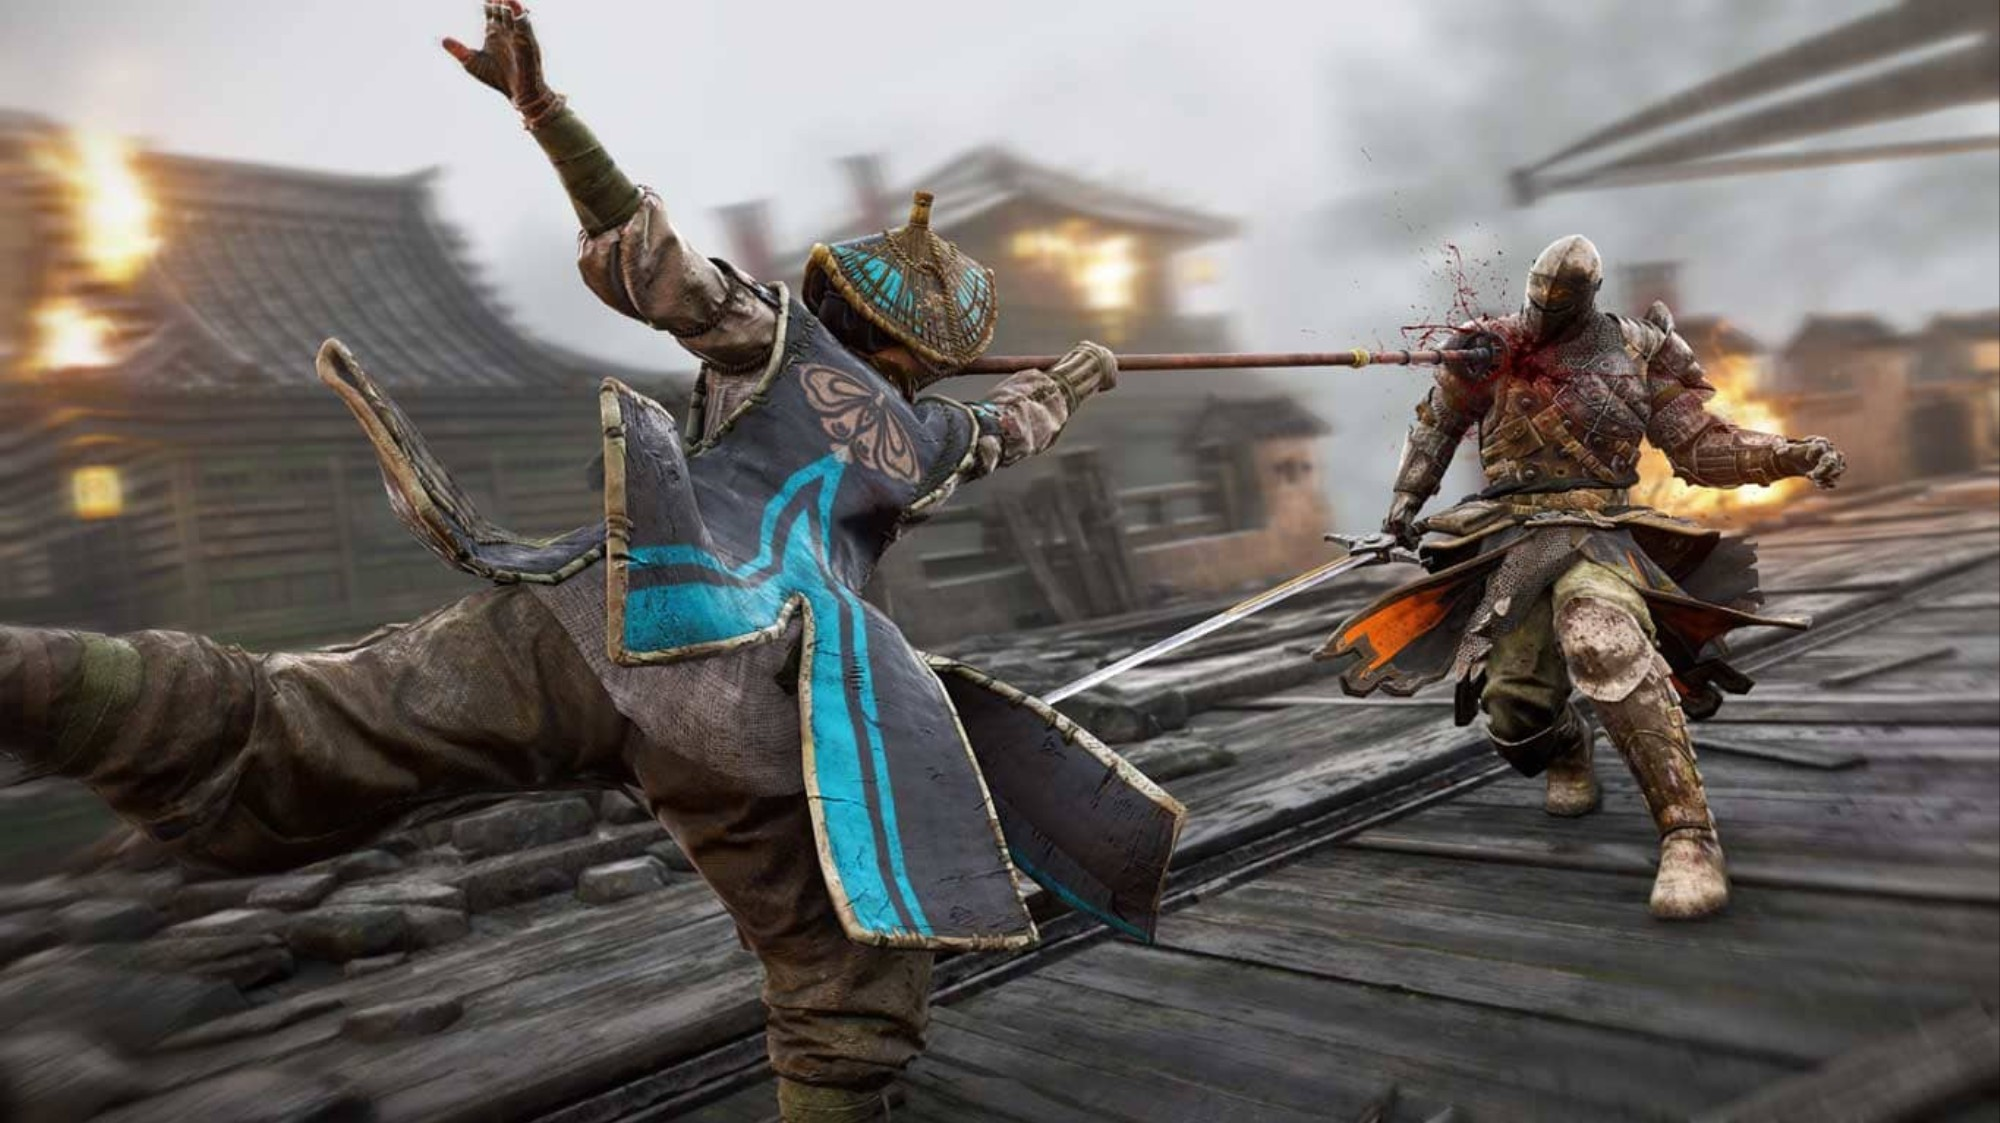 I Didn't Think It'd Be This Easy,' Says 'For Honor' Player